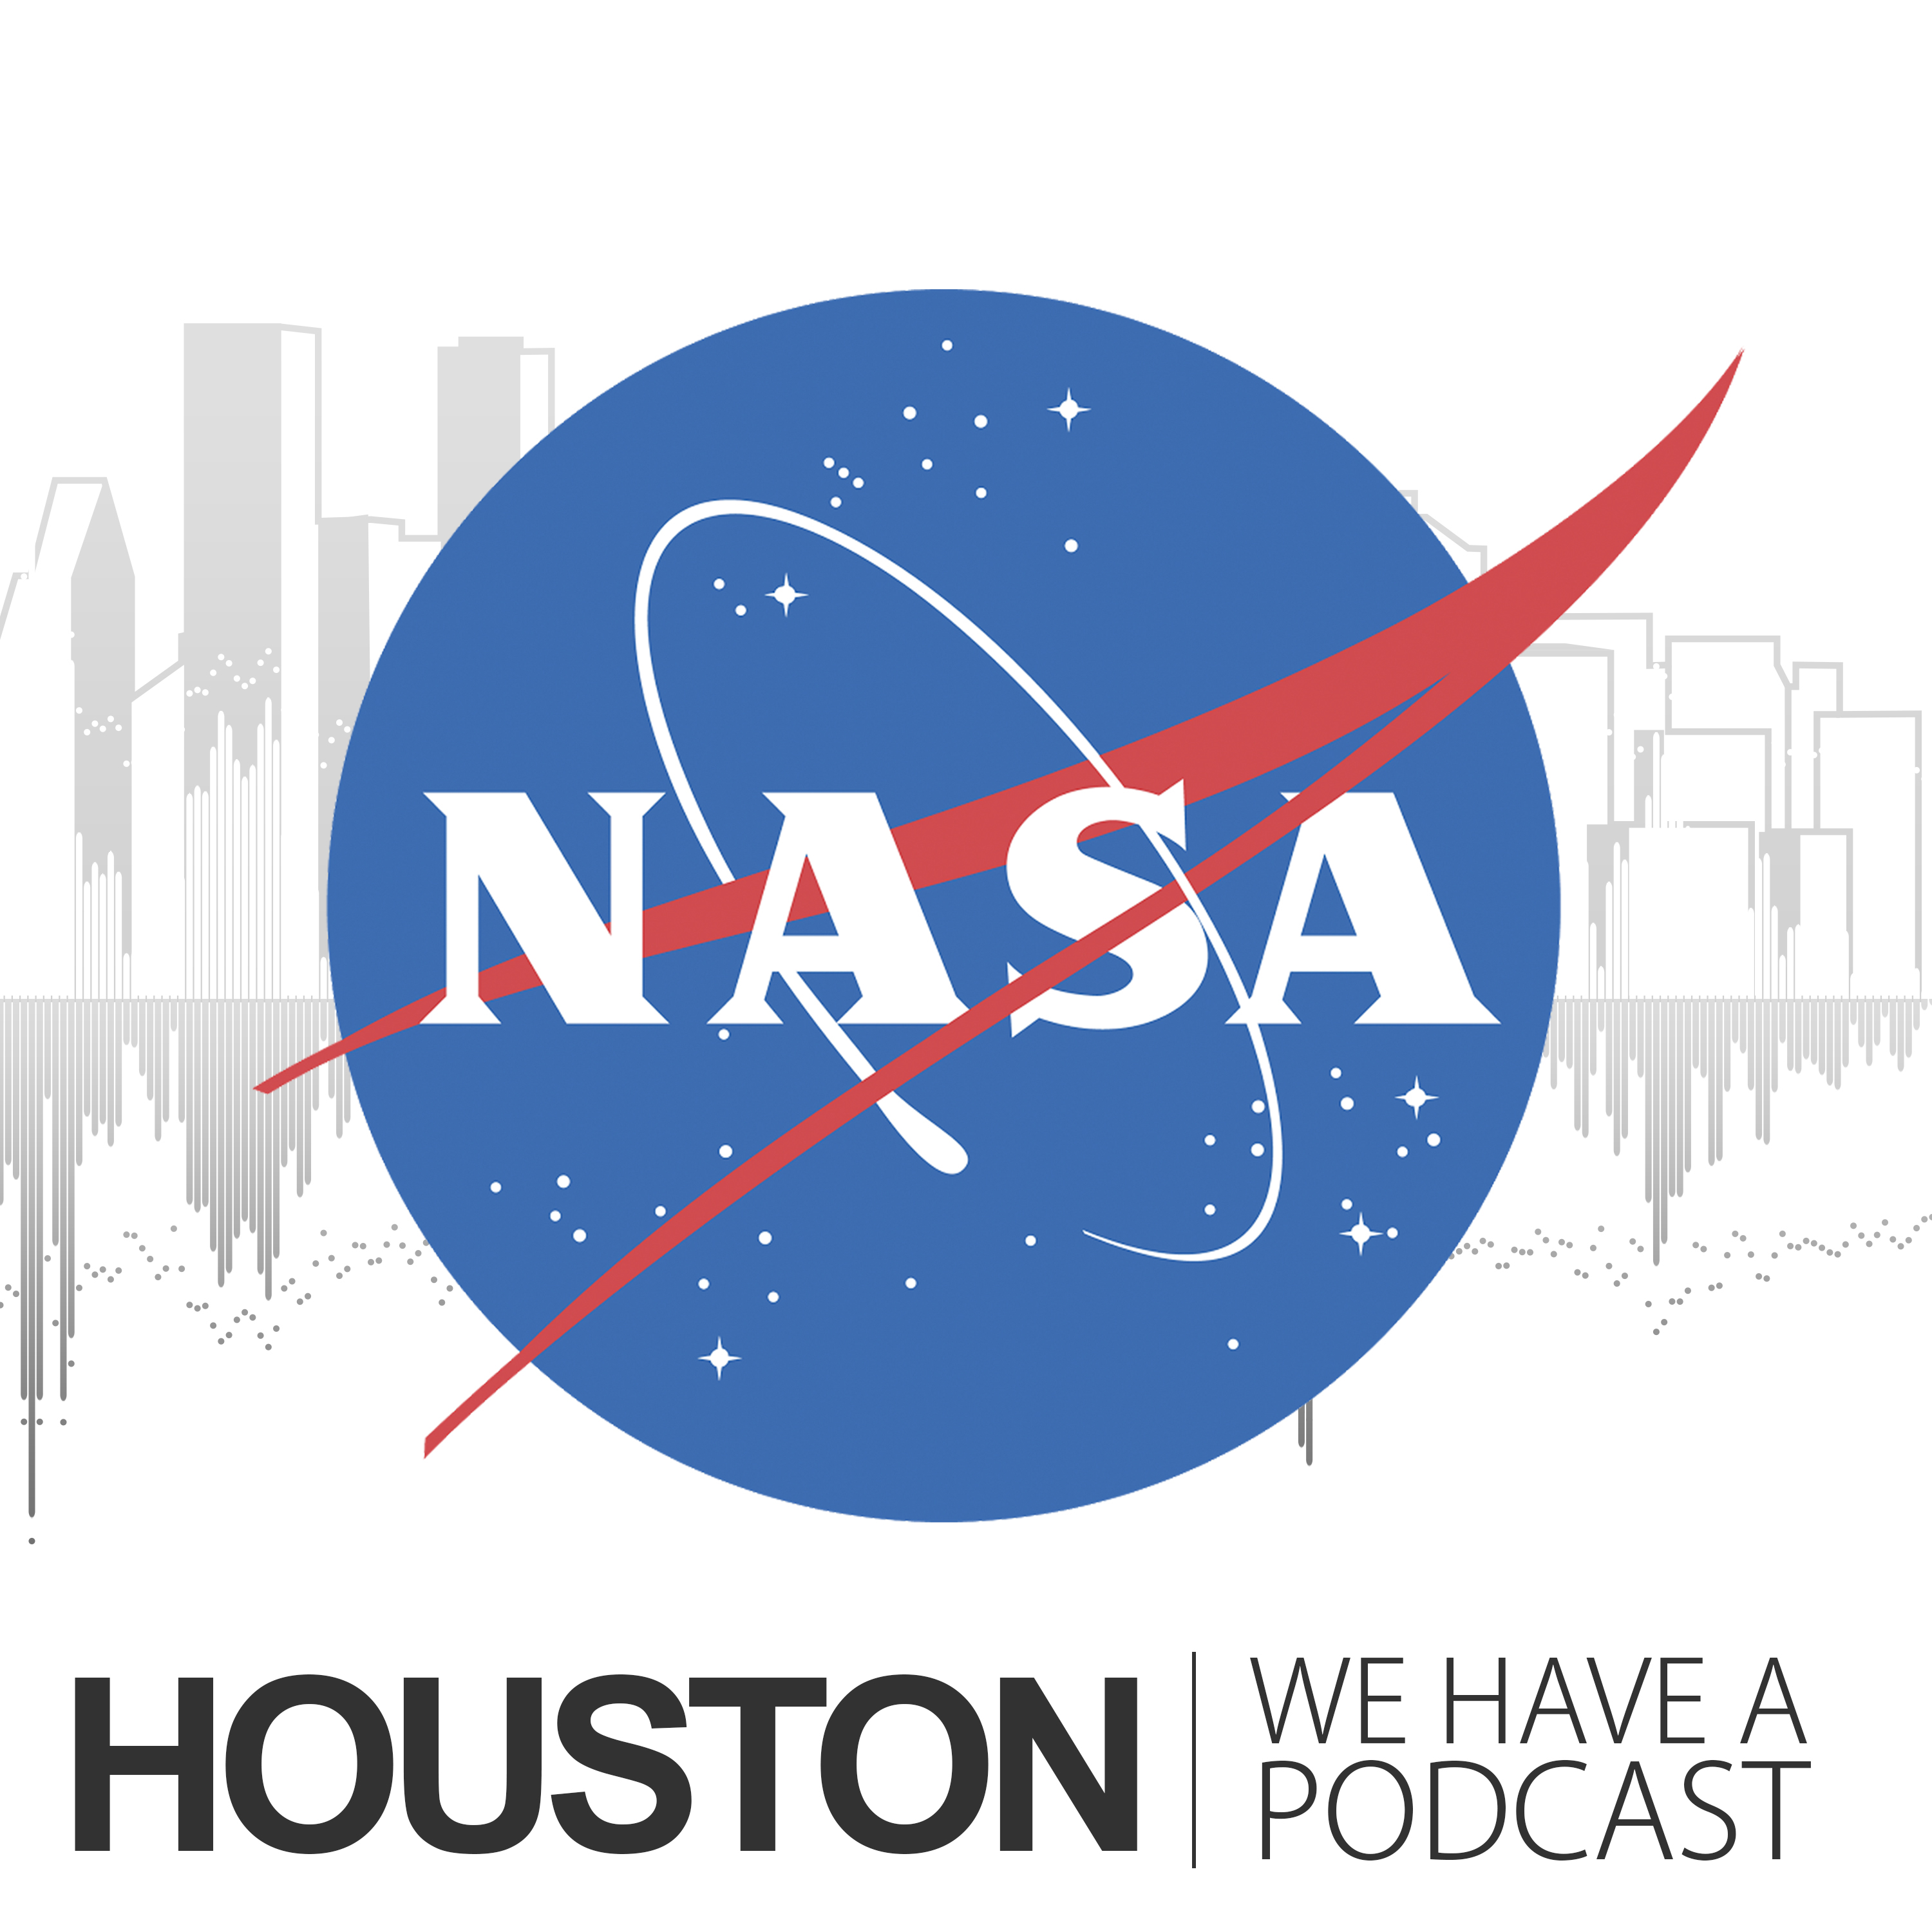 Houston We Have a Podcast logo